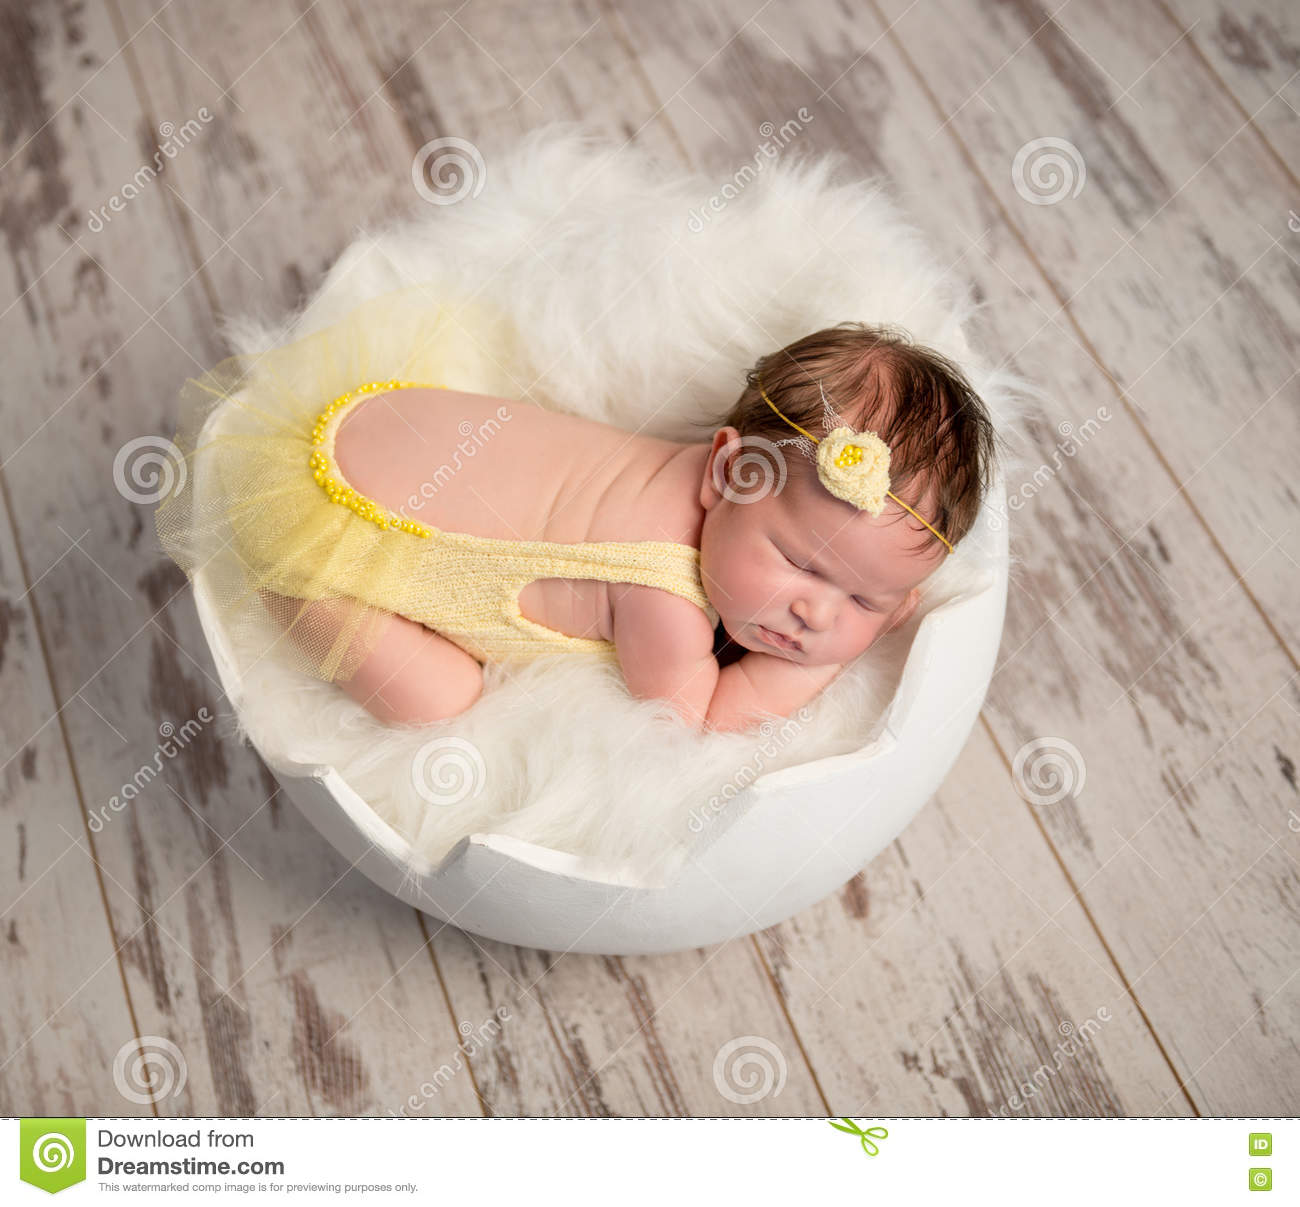 Funny Sleeping Baby In Yellow Romper On Round Cot Stock Image Image Of Chicken Baby 78247707